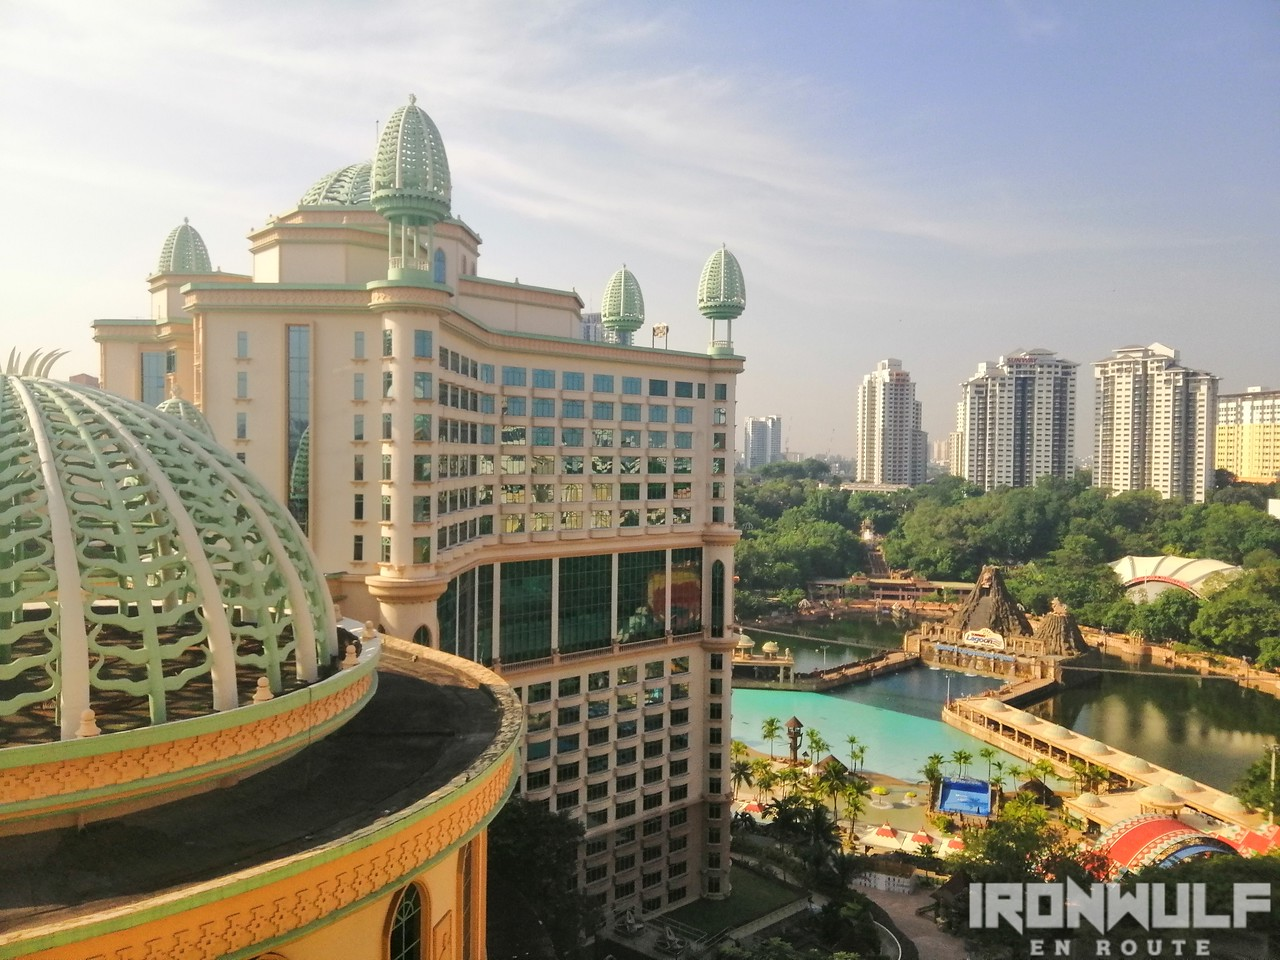 View from our room at Sunway Pyramid Lagoon